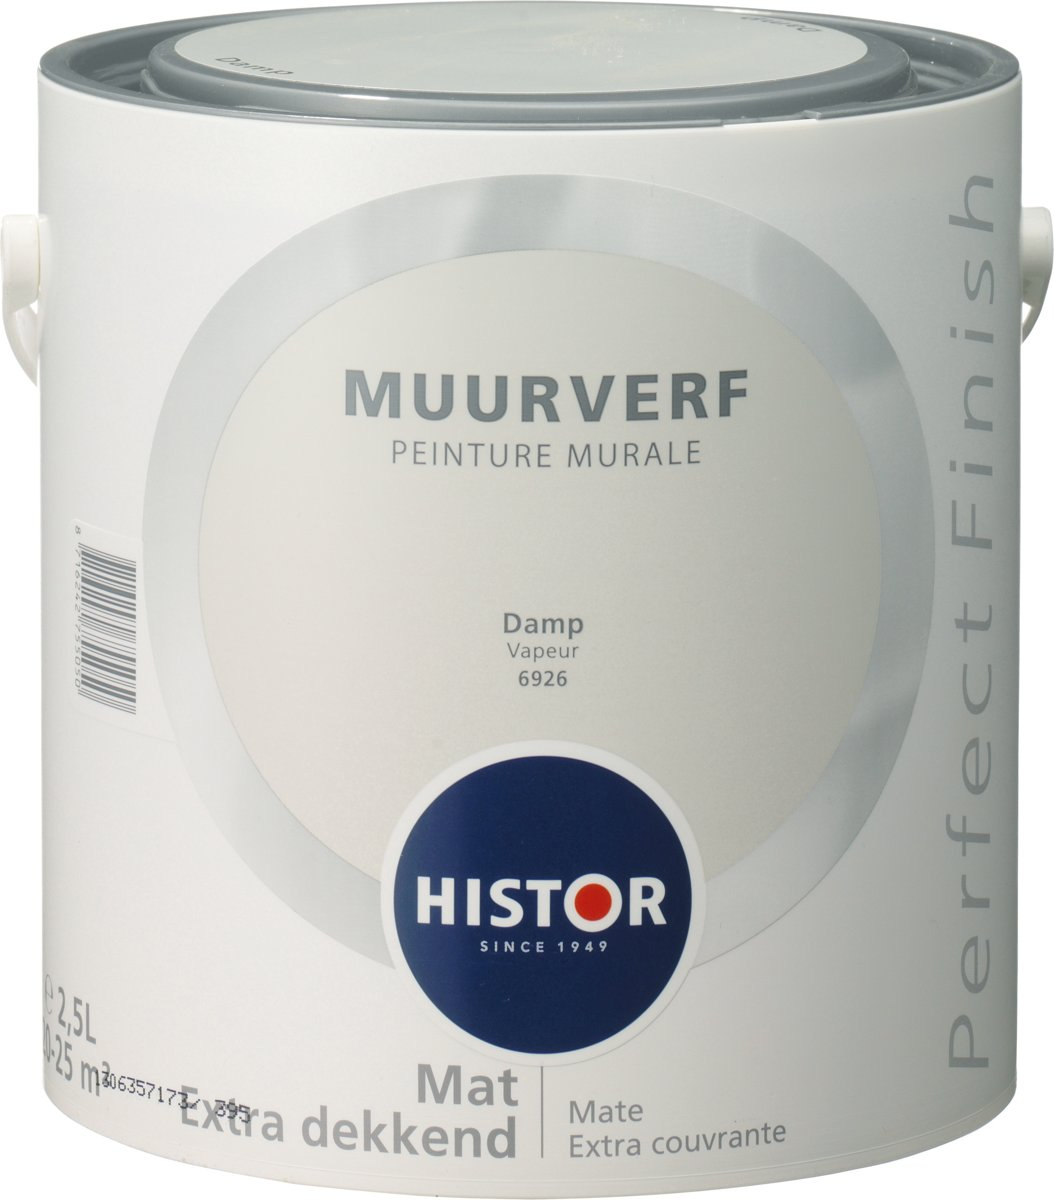 Histor Blauw Histor Perfect Finish Muurverf Mat 2 5 Liter Damp